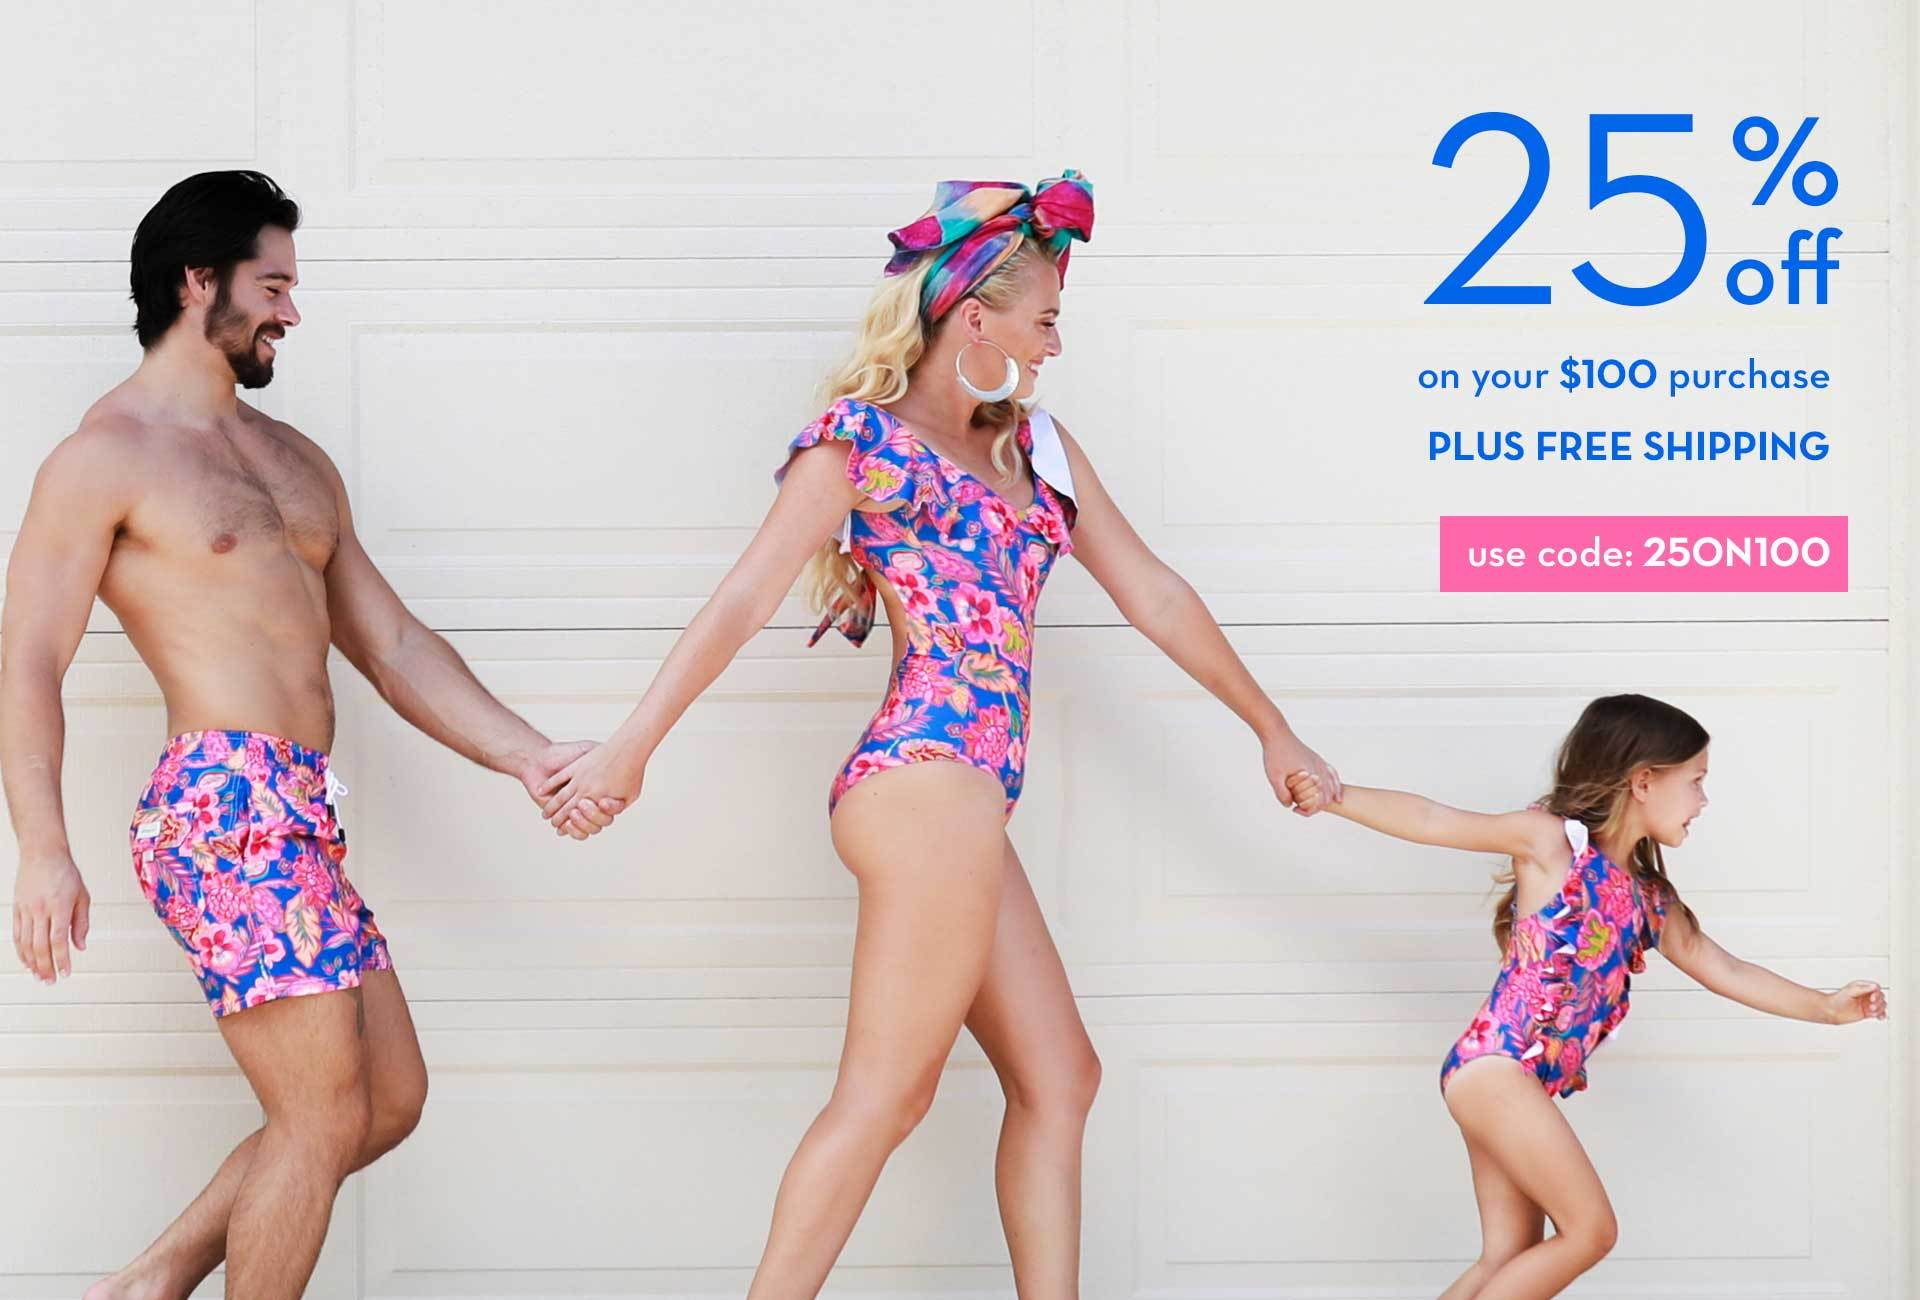 4ad43159e8 98 Coast Av. USA | Swimwear for Men, Women, Boys and Girls.